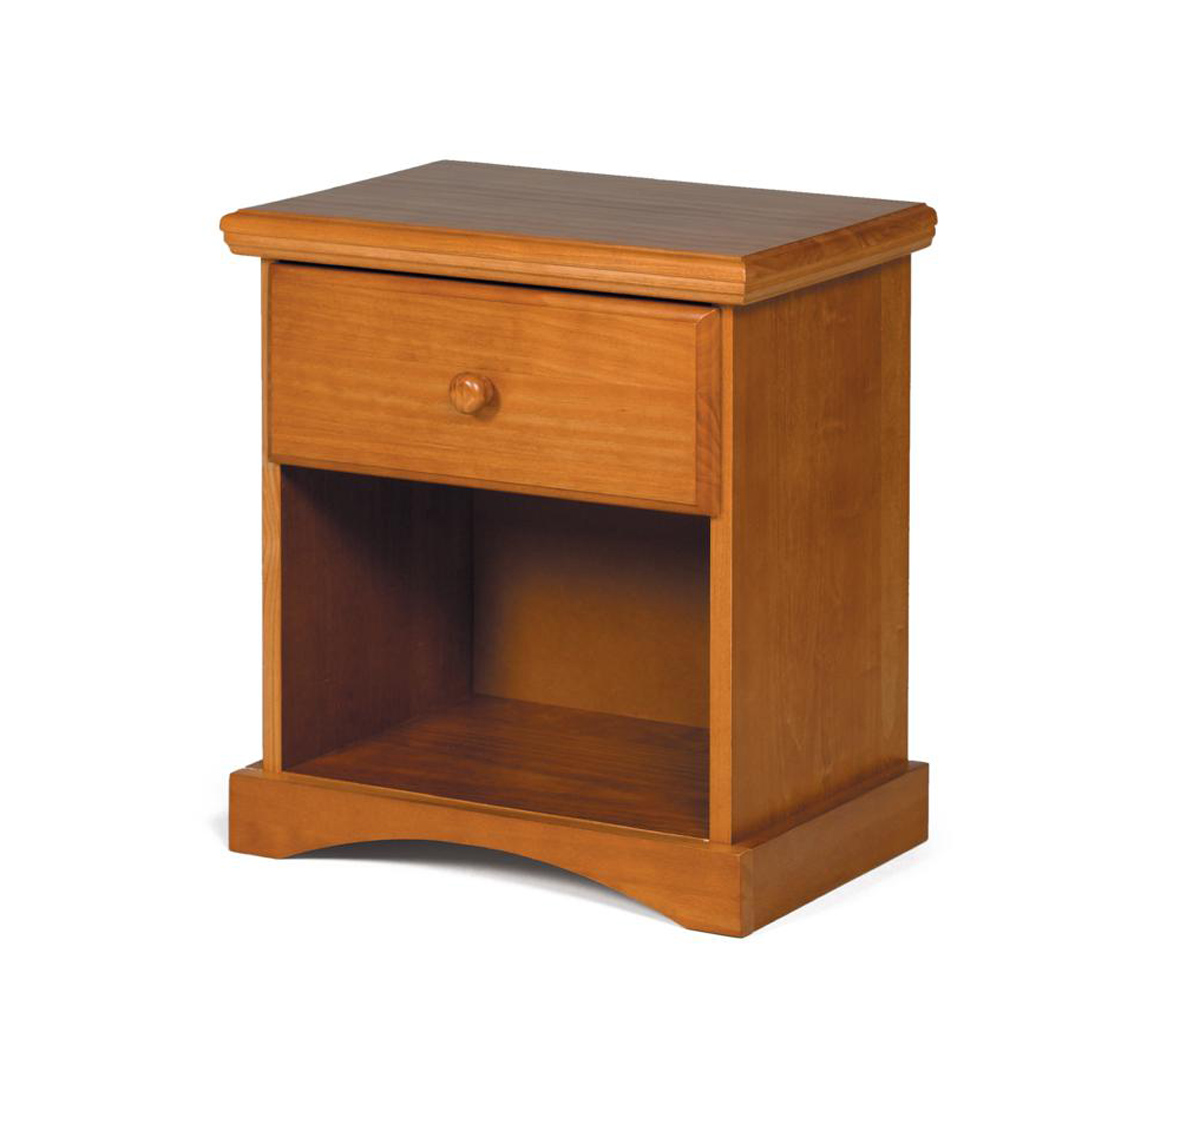 Chelsea Home 3641120 Night Stand - Honey